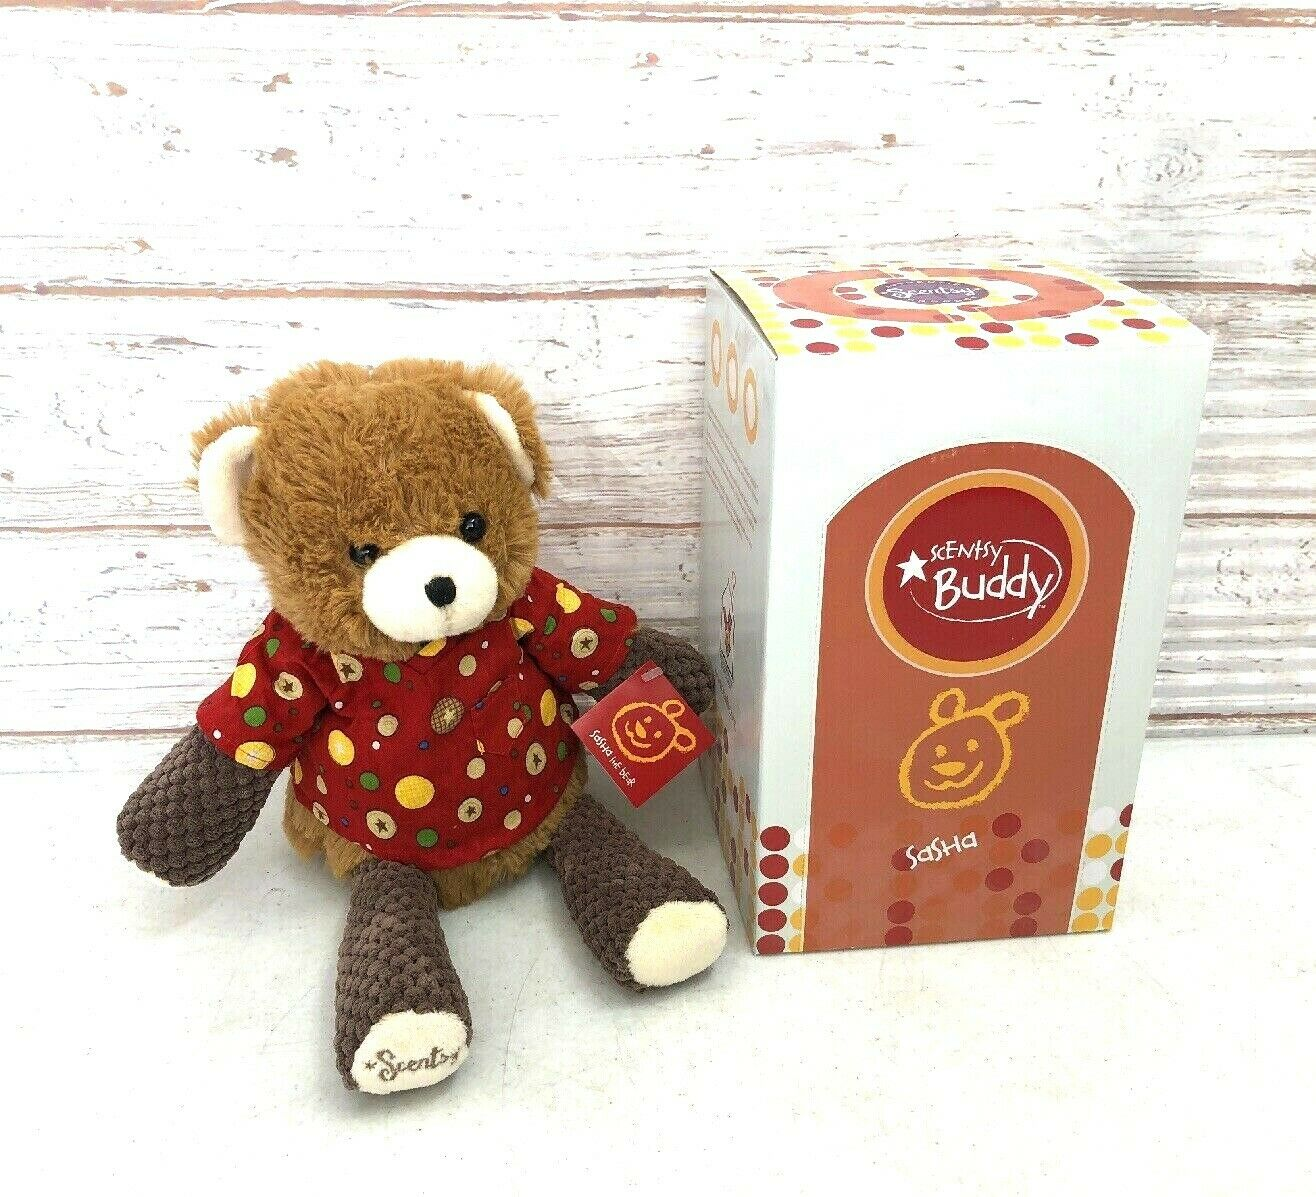 Scentsy Buddy Sasha the Bear w tag New In The Box. NO Scent Pak Included.